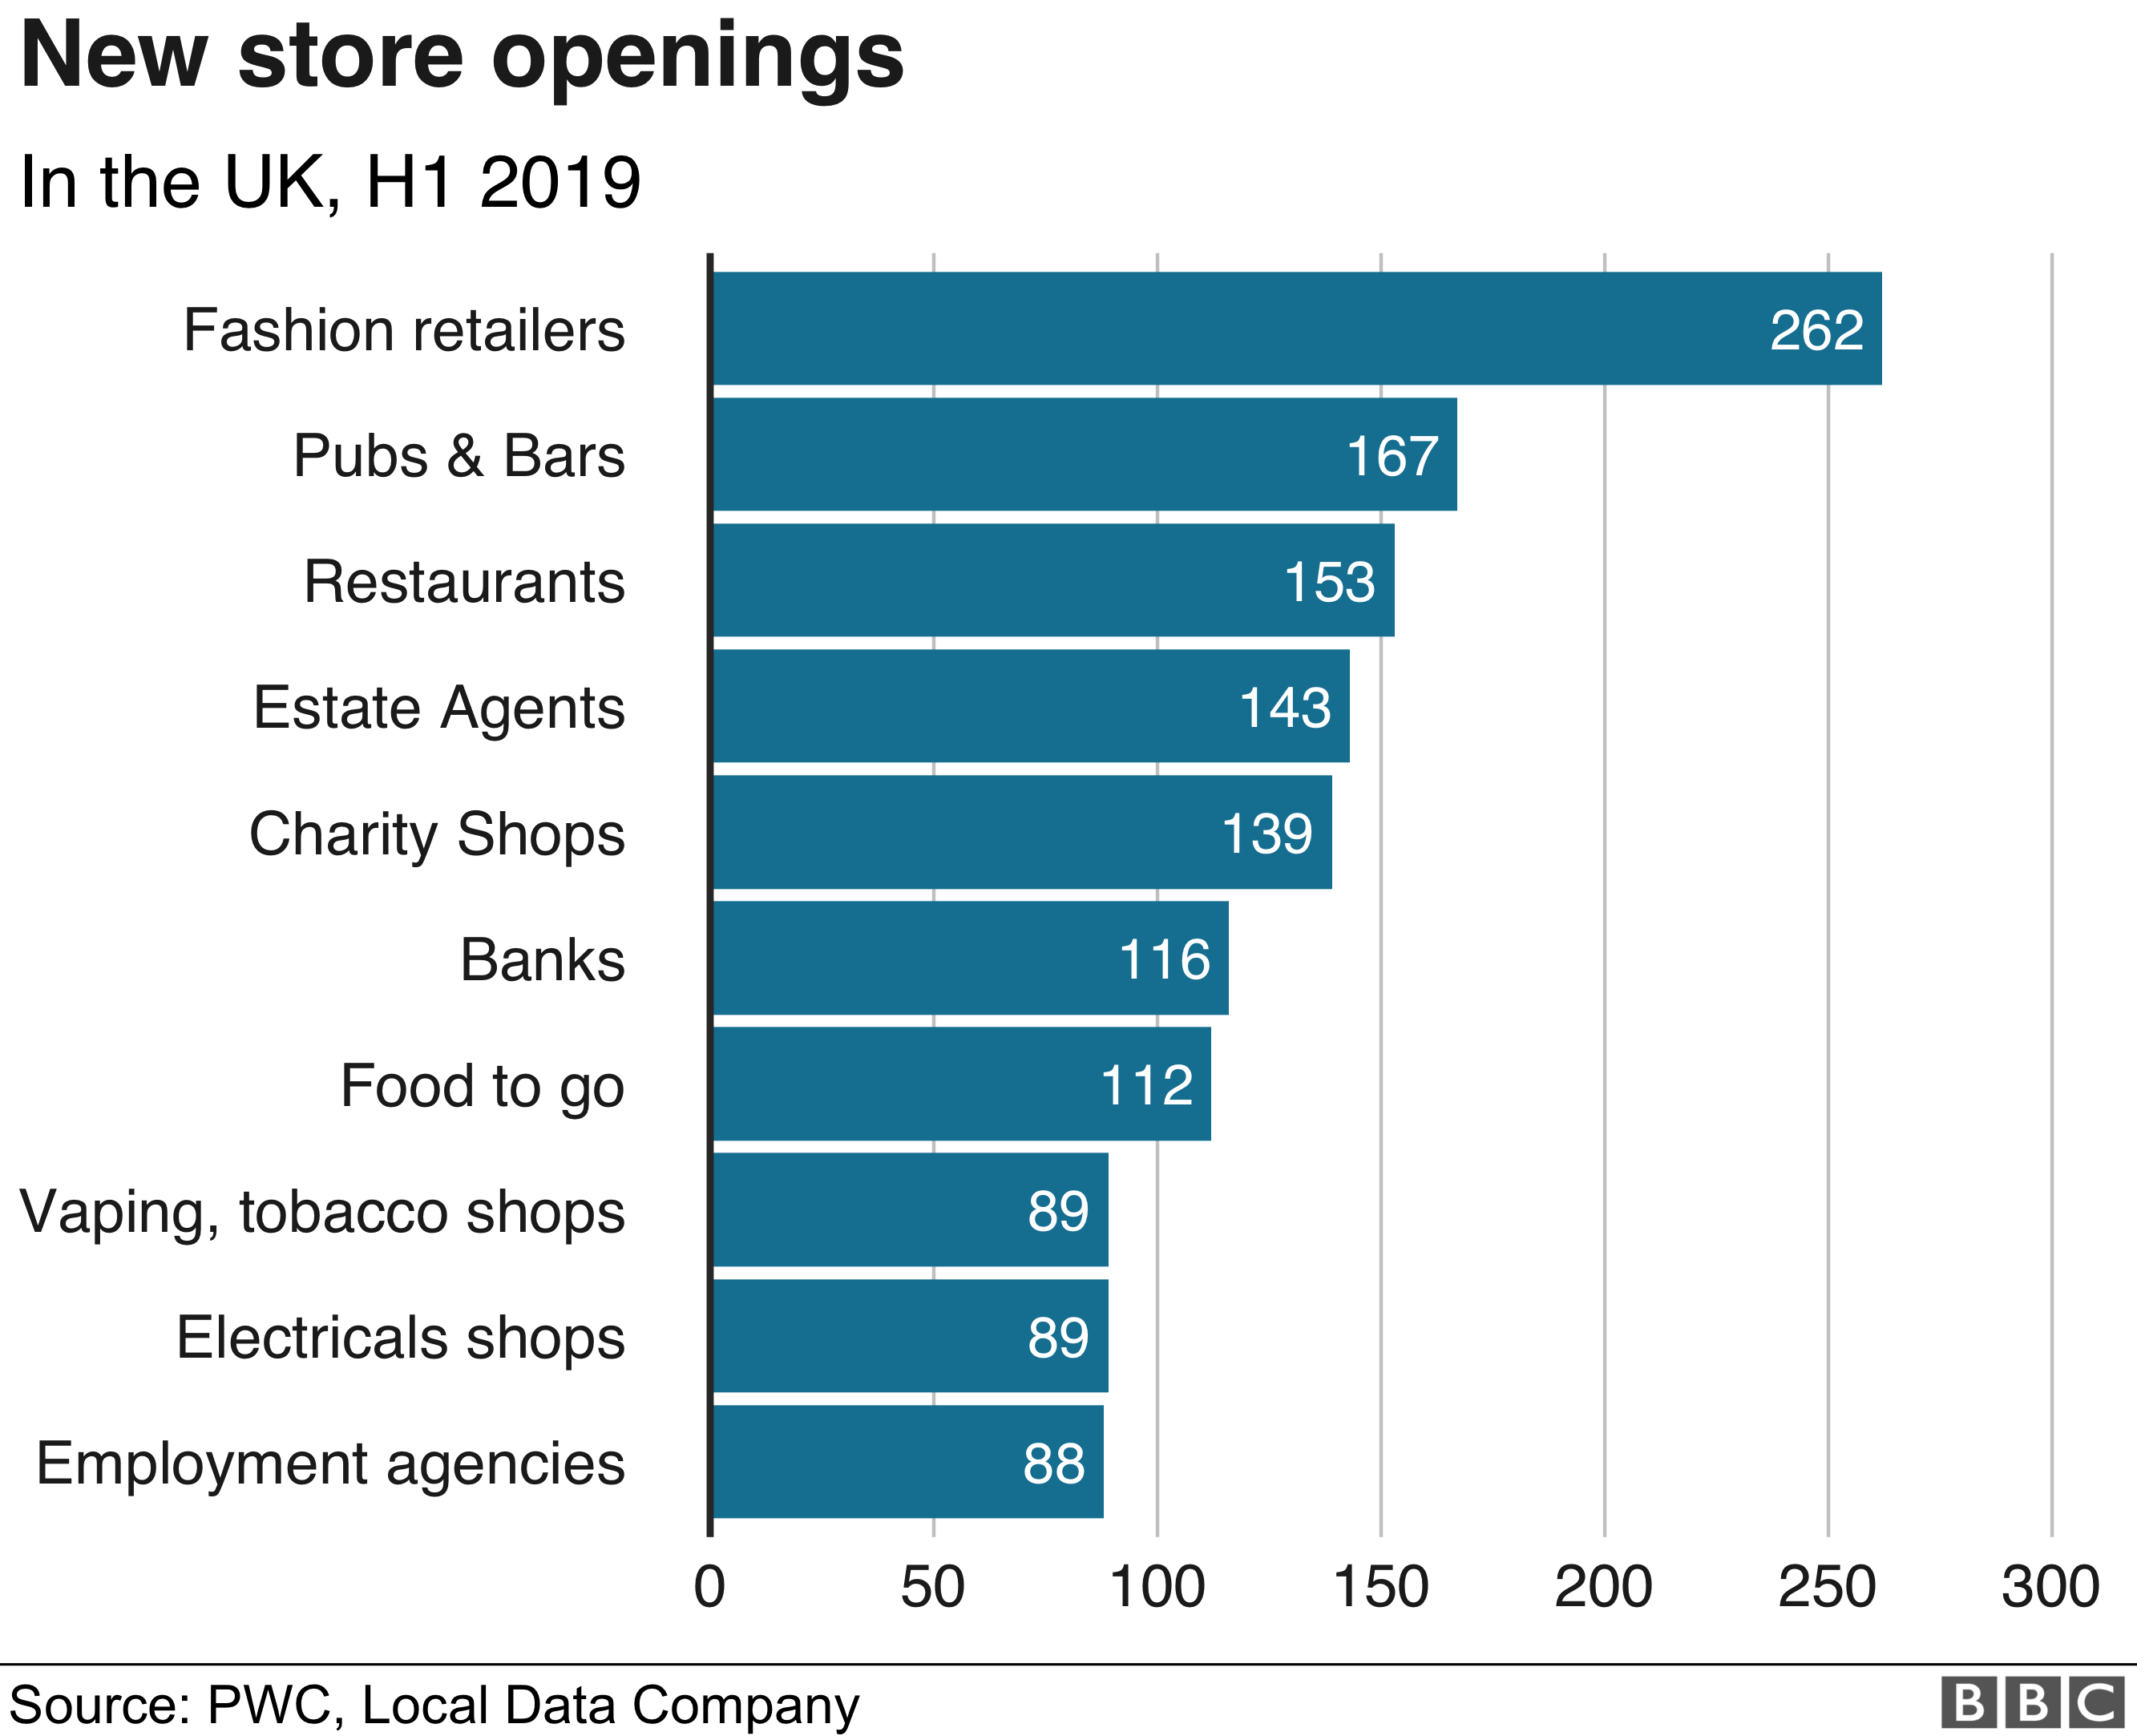 Chart showing fastest growing categories of shops opening on UK High Streets H1 2019.